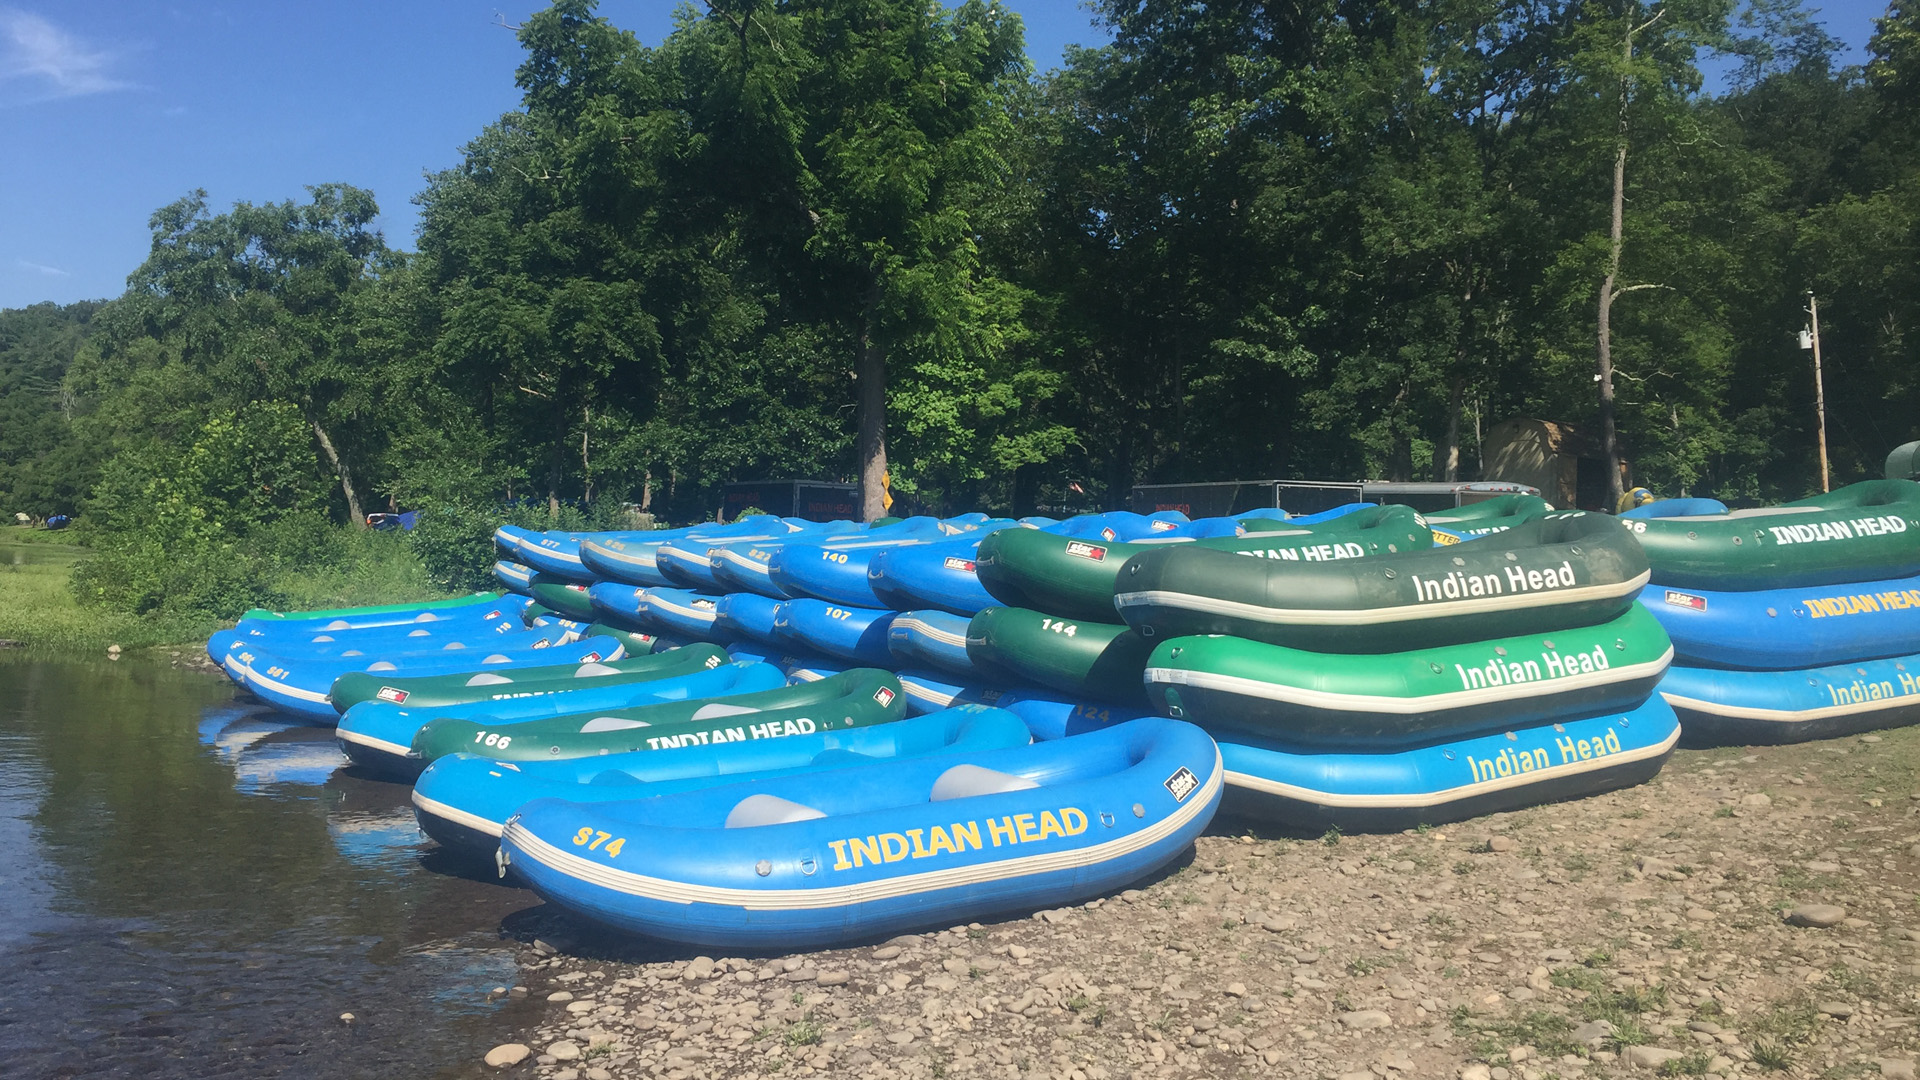 rafts staged on shore ready for guests Indian Head Canoeing Rafting Kayaking Tubing Delaware River